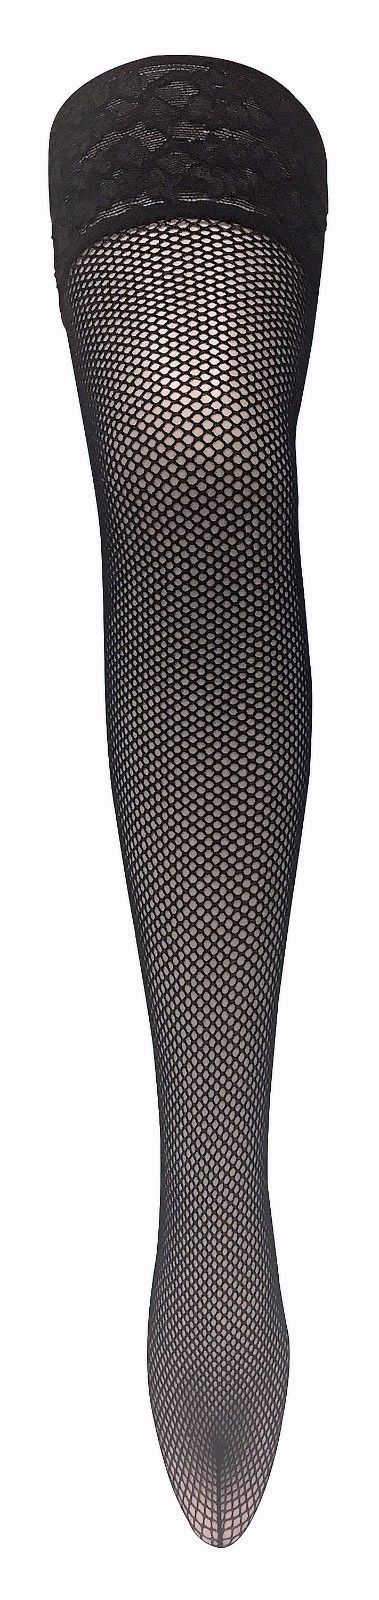 Ladies Black Floral Deep Lace Top Fashion Over Knee Fishnet Hold Ups Stockings